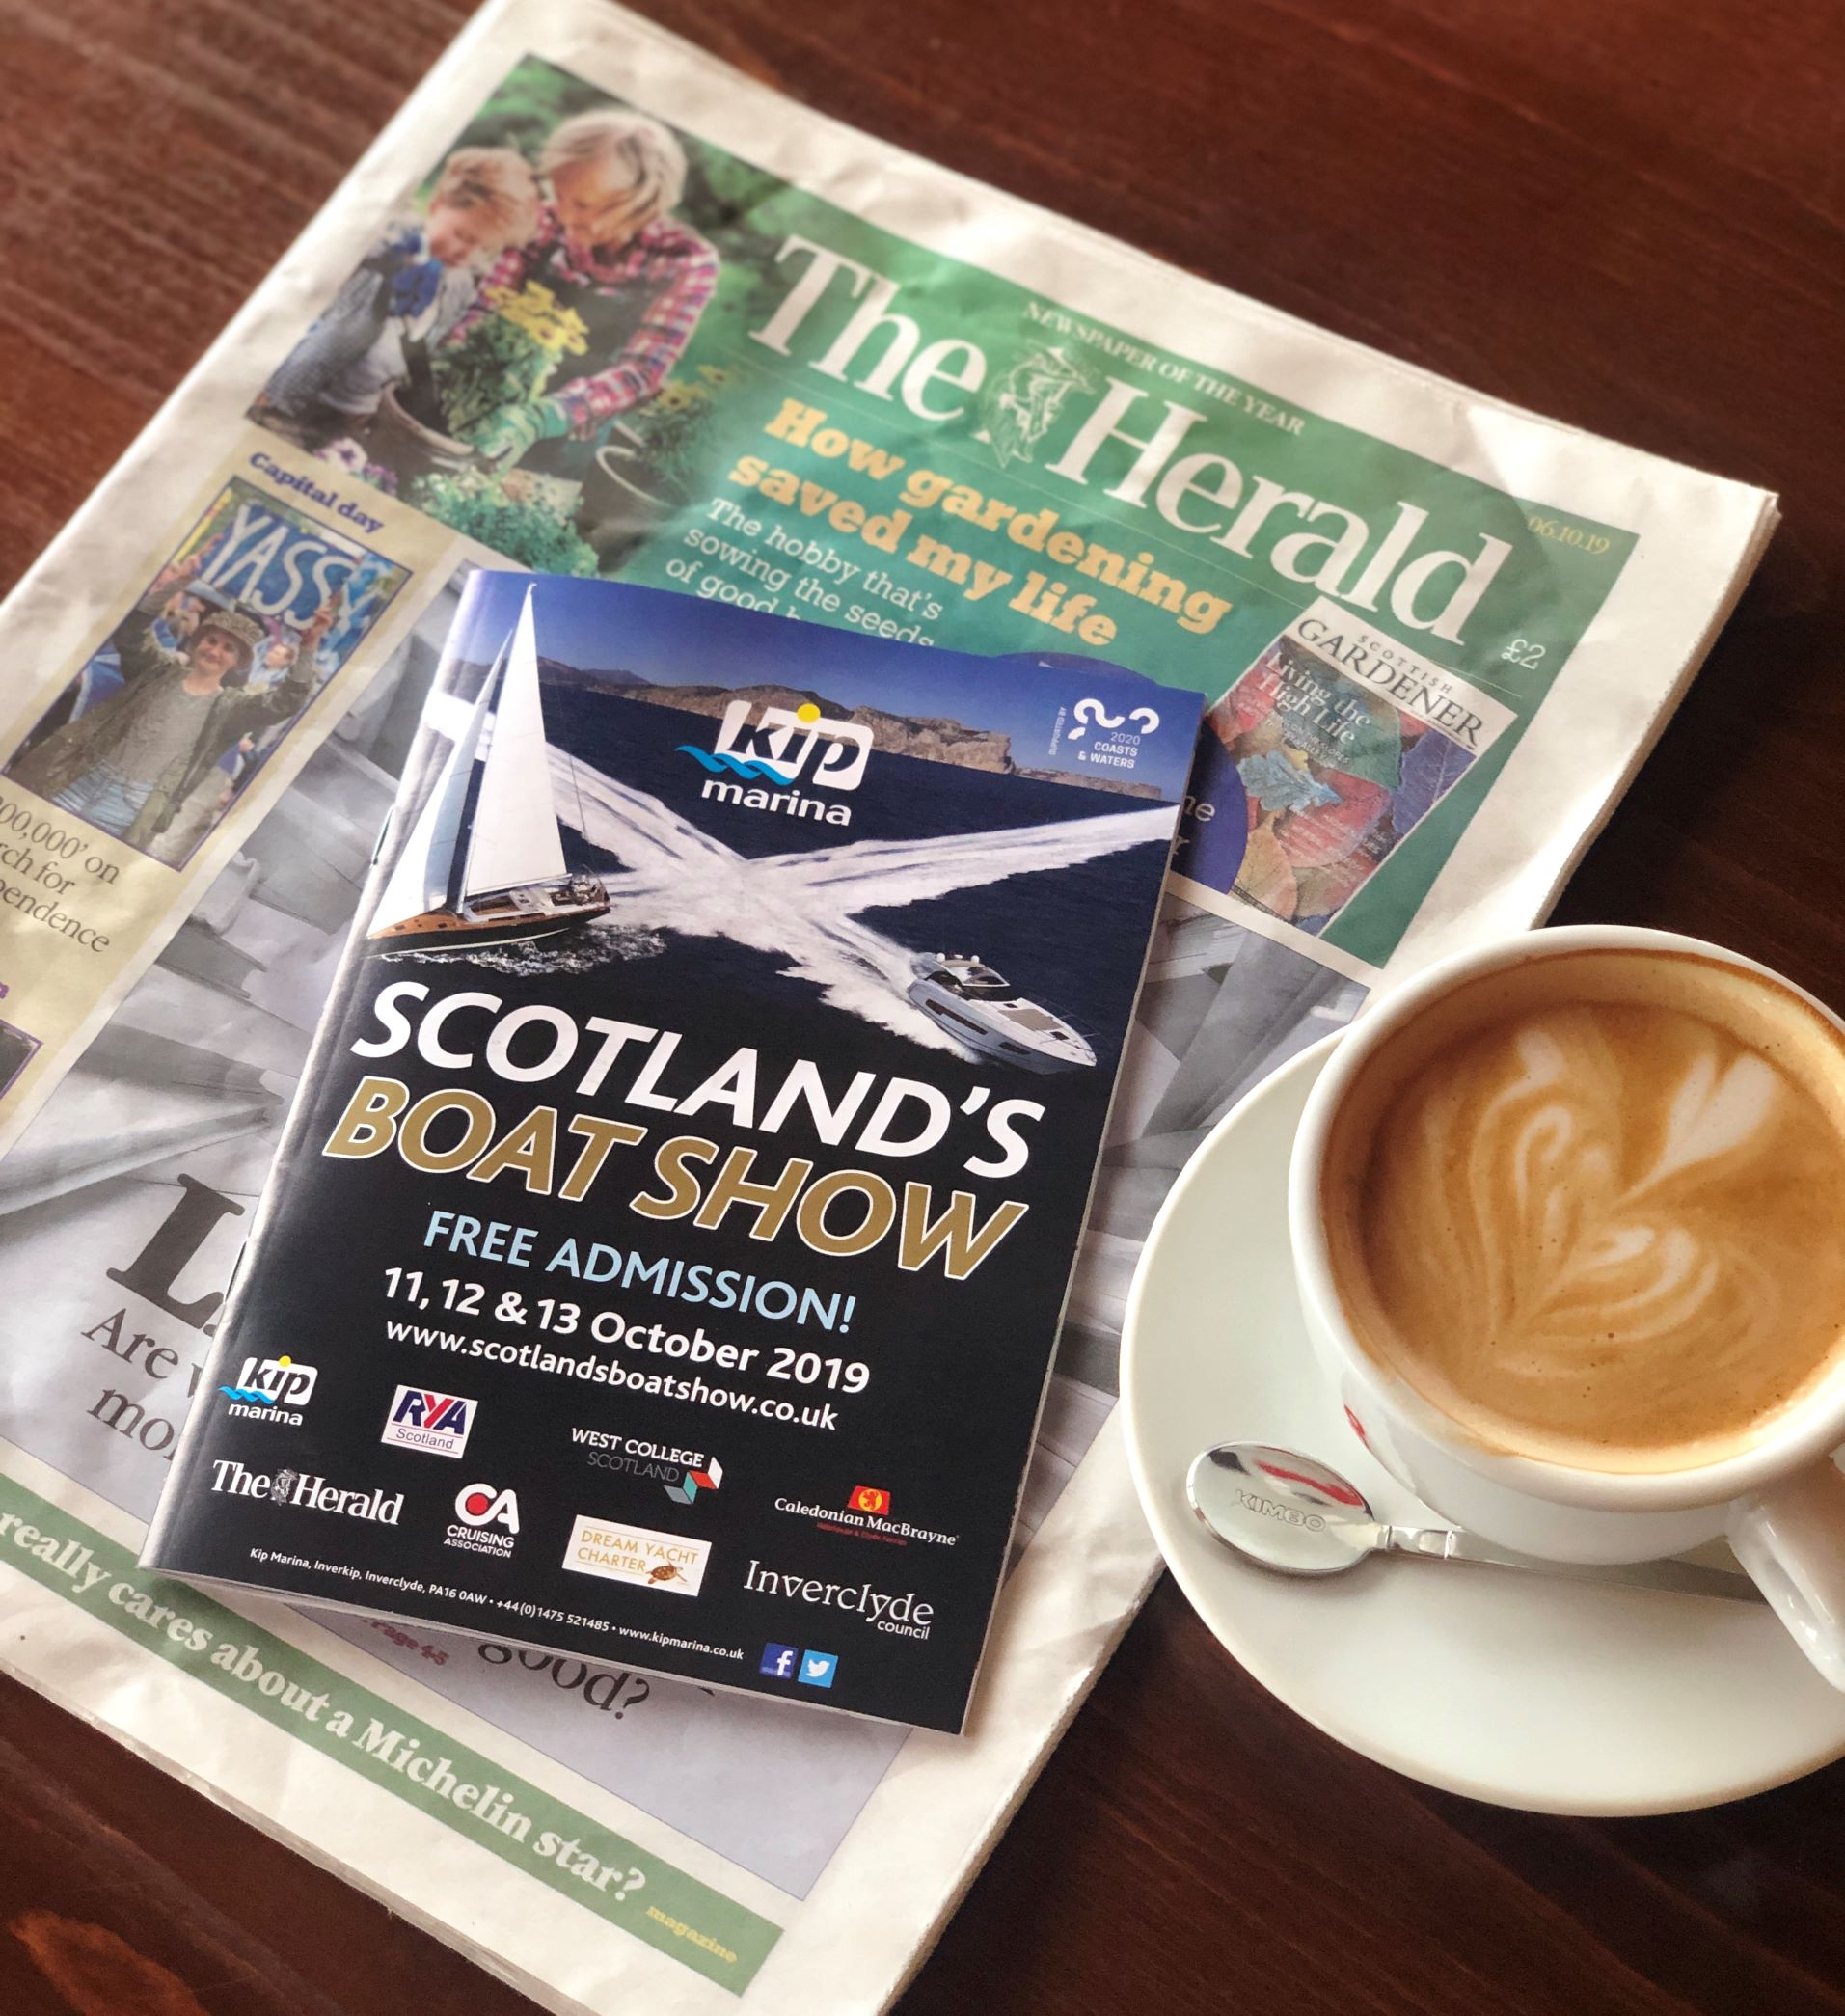 Get a free Scotland's Boat Show Guide with The Herald